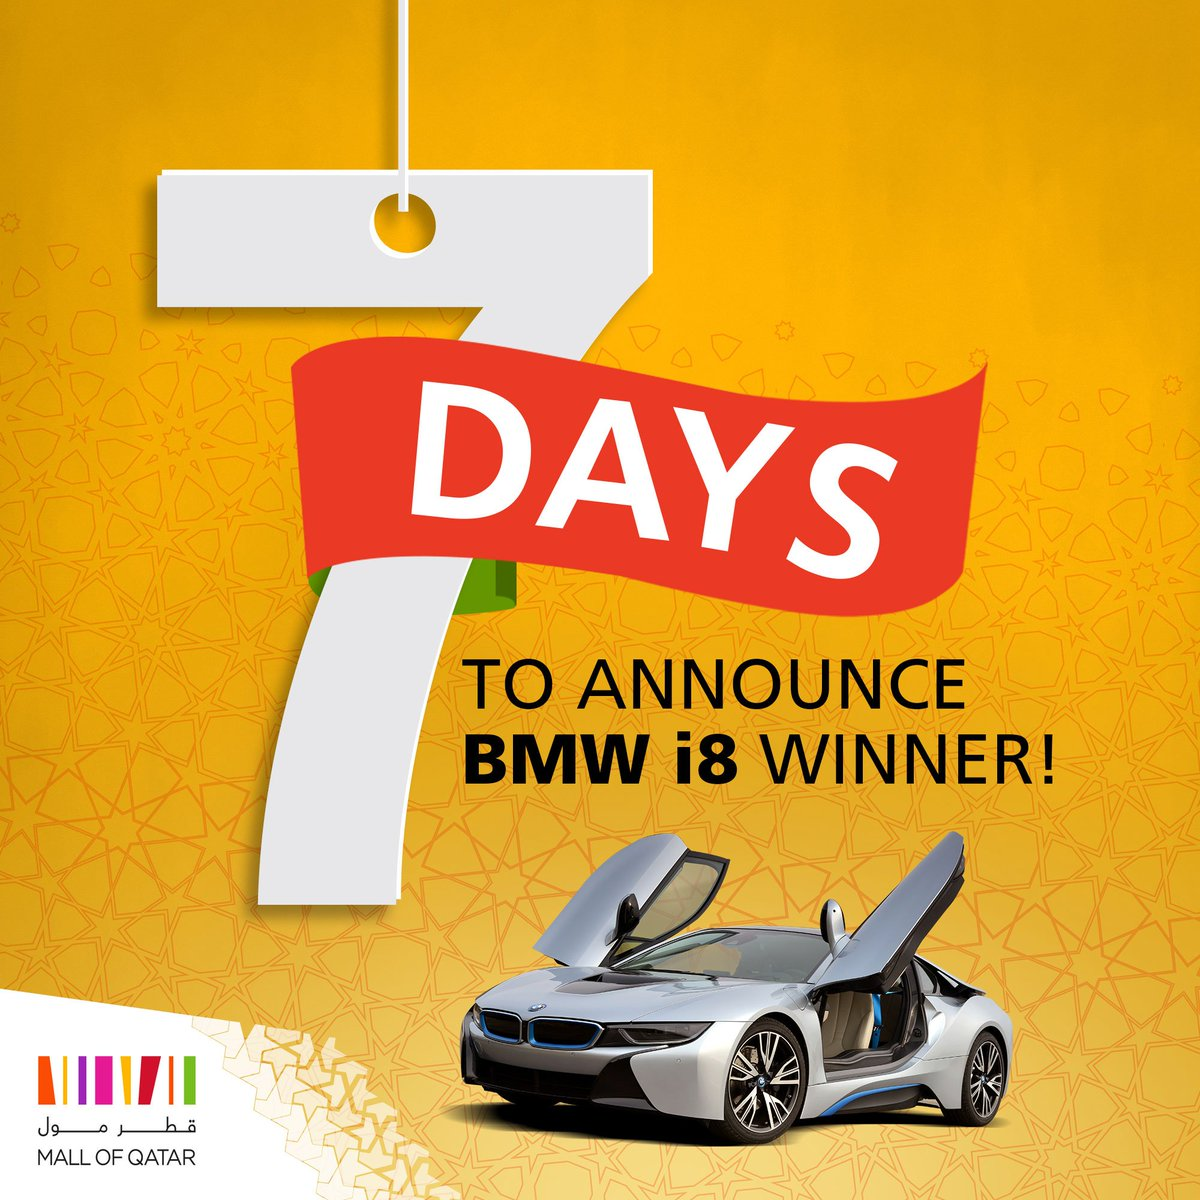 Mall Of Qatar On Twitter 7 Days Left To Announce The Winner Of A